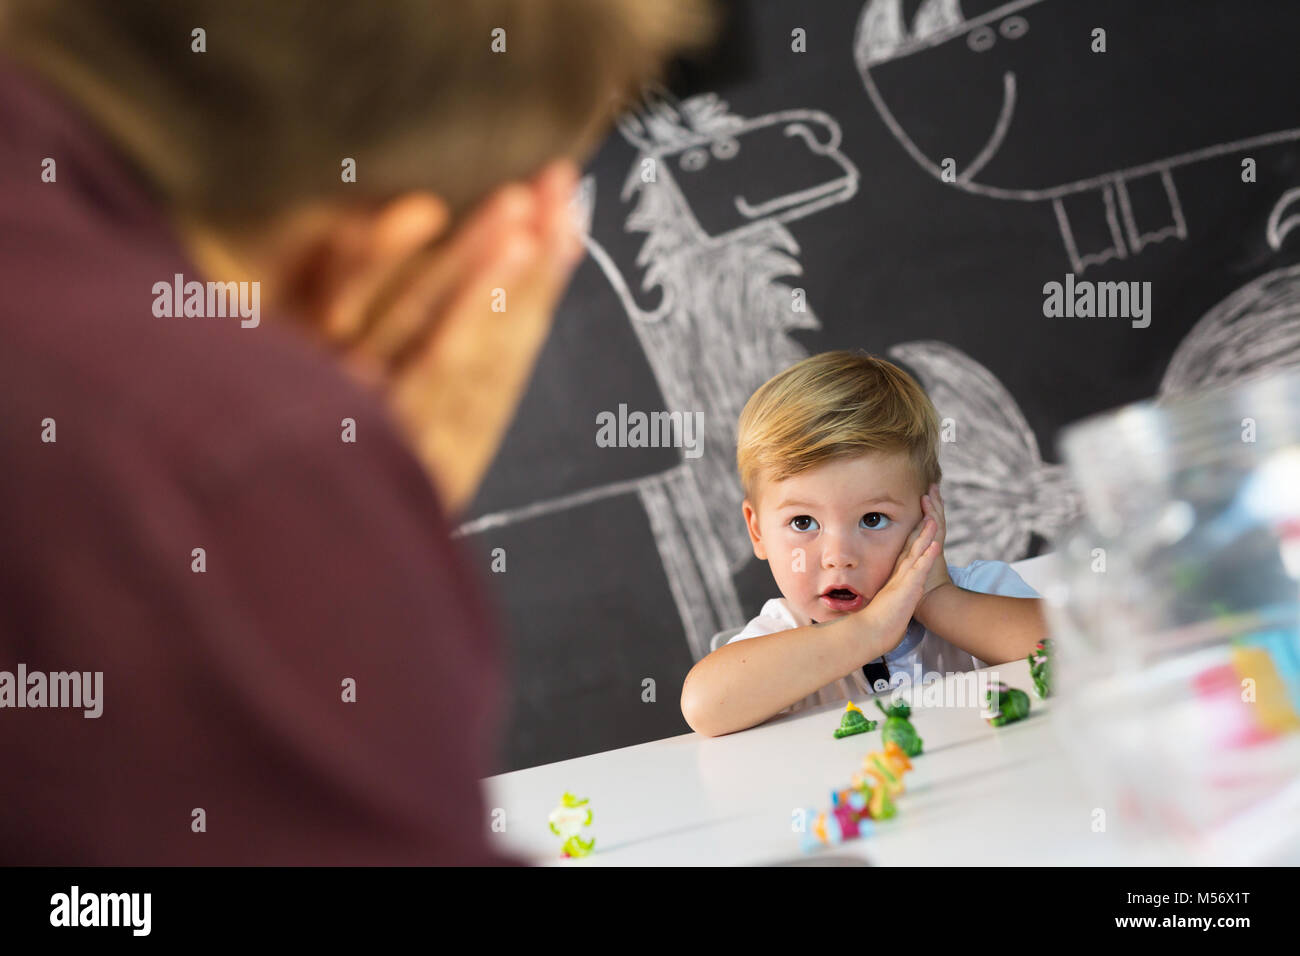 Cute little toddler boy at child therapy session. - Stock Image